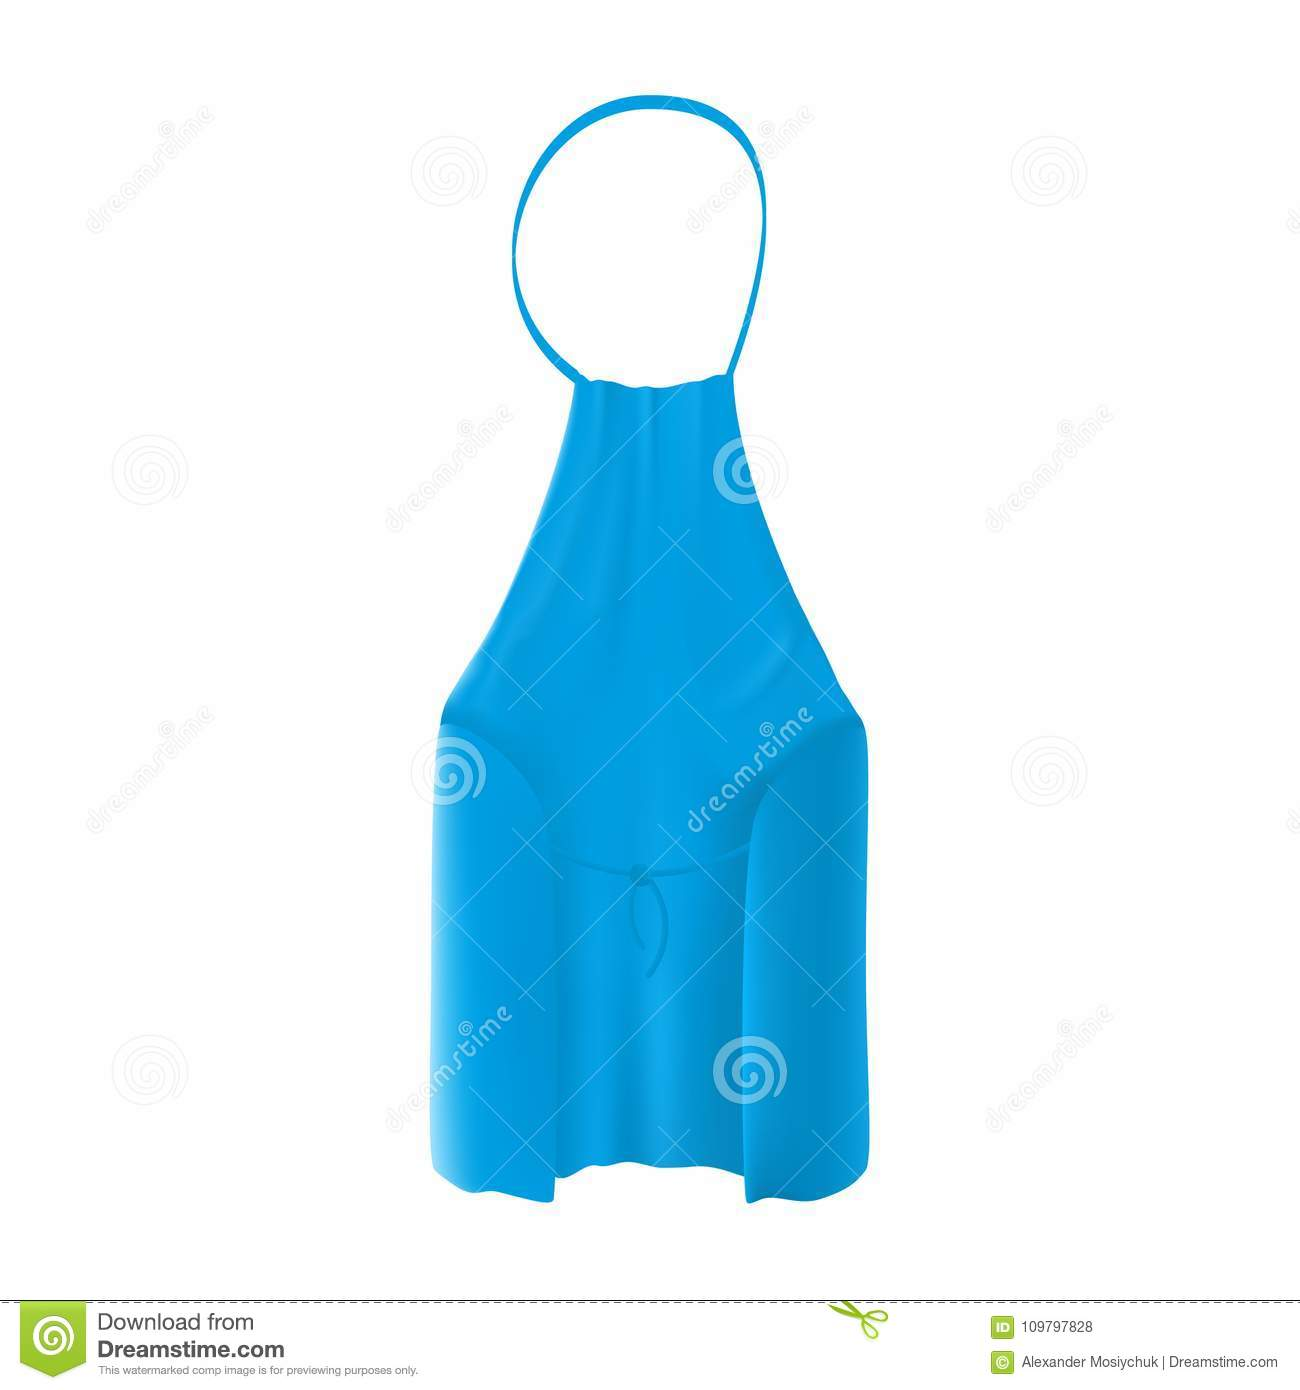 Back View Of The Blank Blue Kitchen Apron. Protective Garment. Stock ...